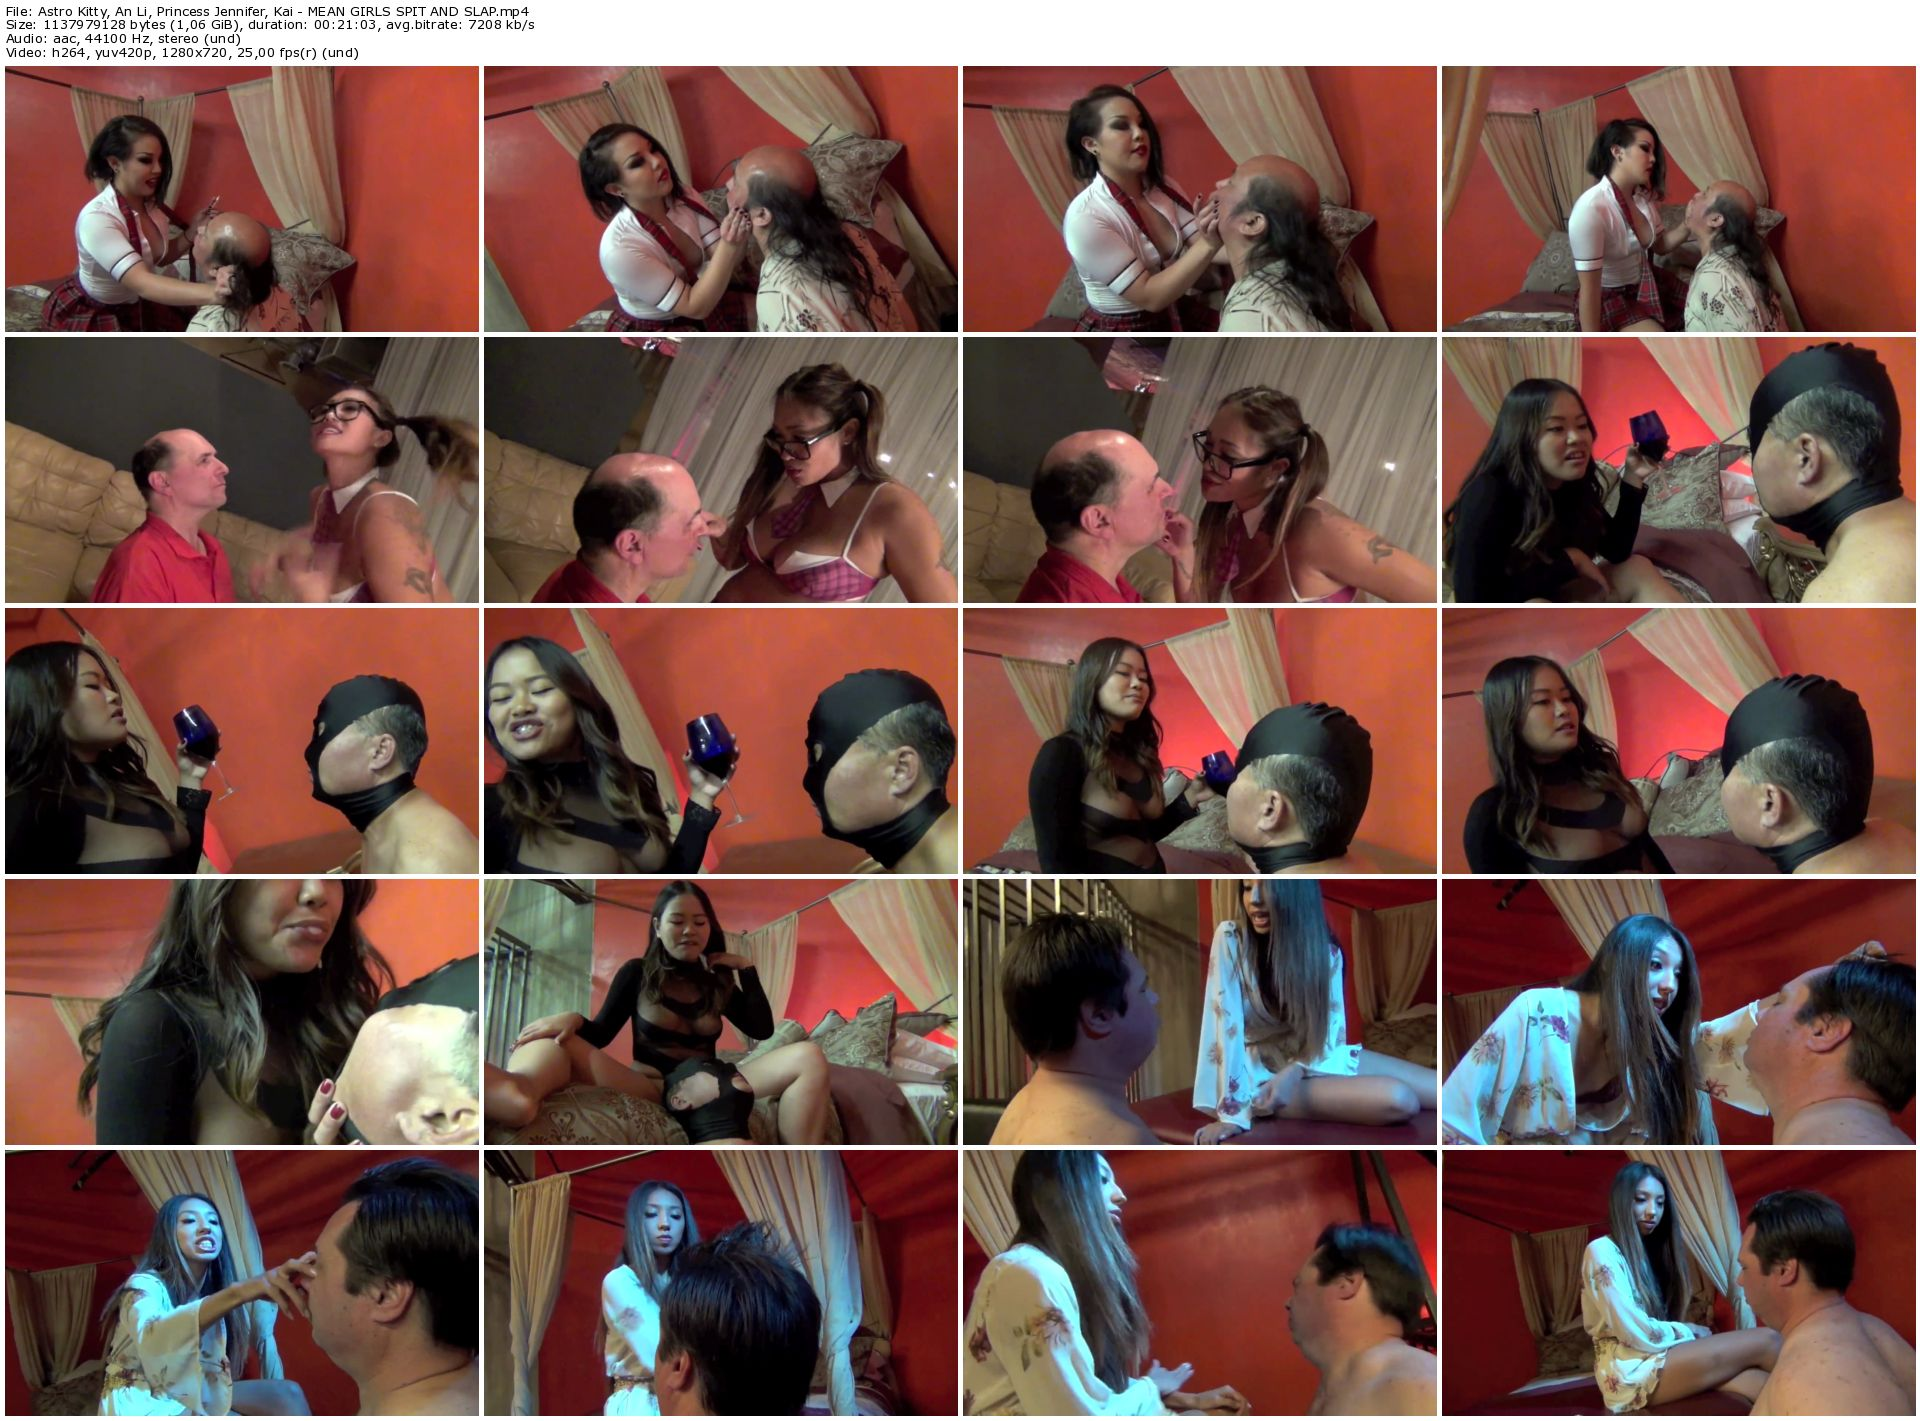 Astro Kitty_ An Li_ Princess Jennifer_ Kai - MEAN GIRLS SPIT AND SLAP_thumb,